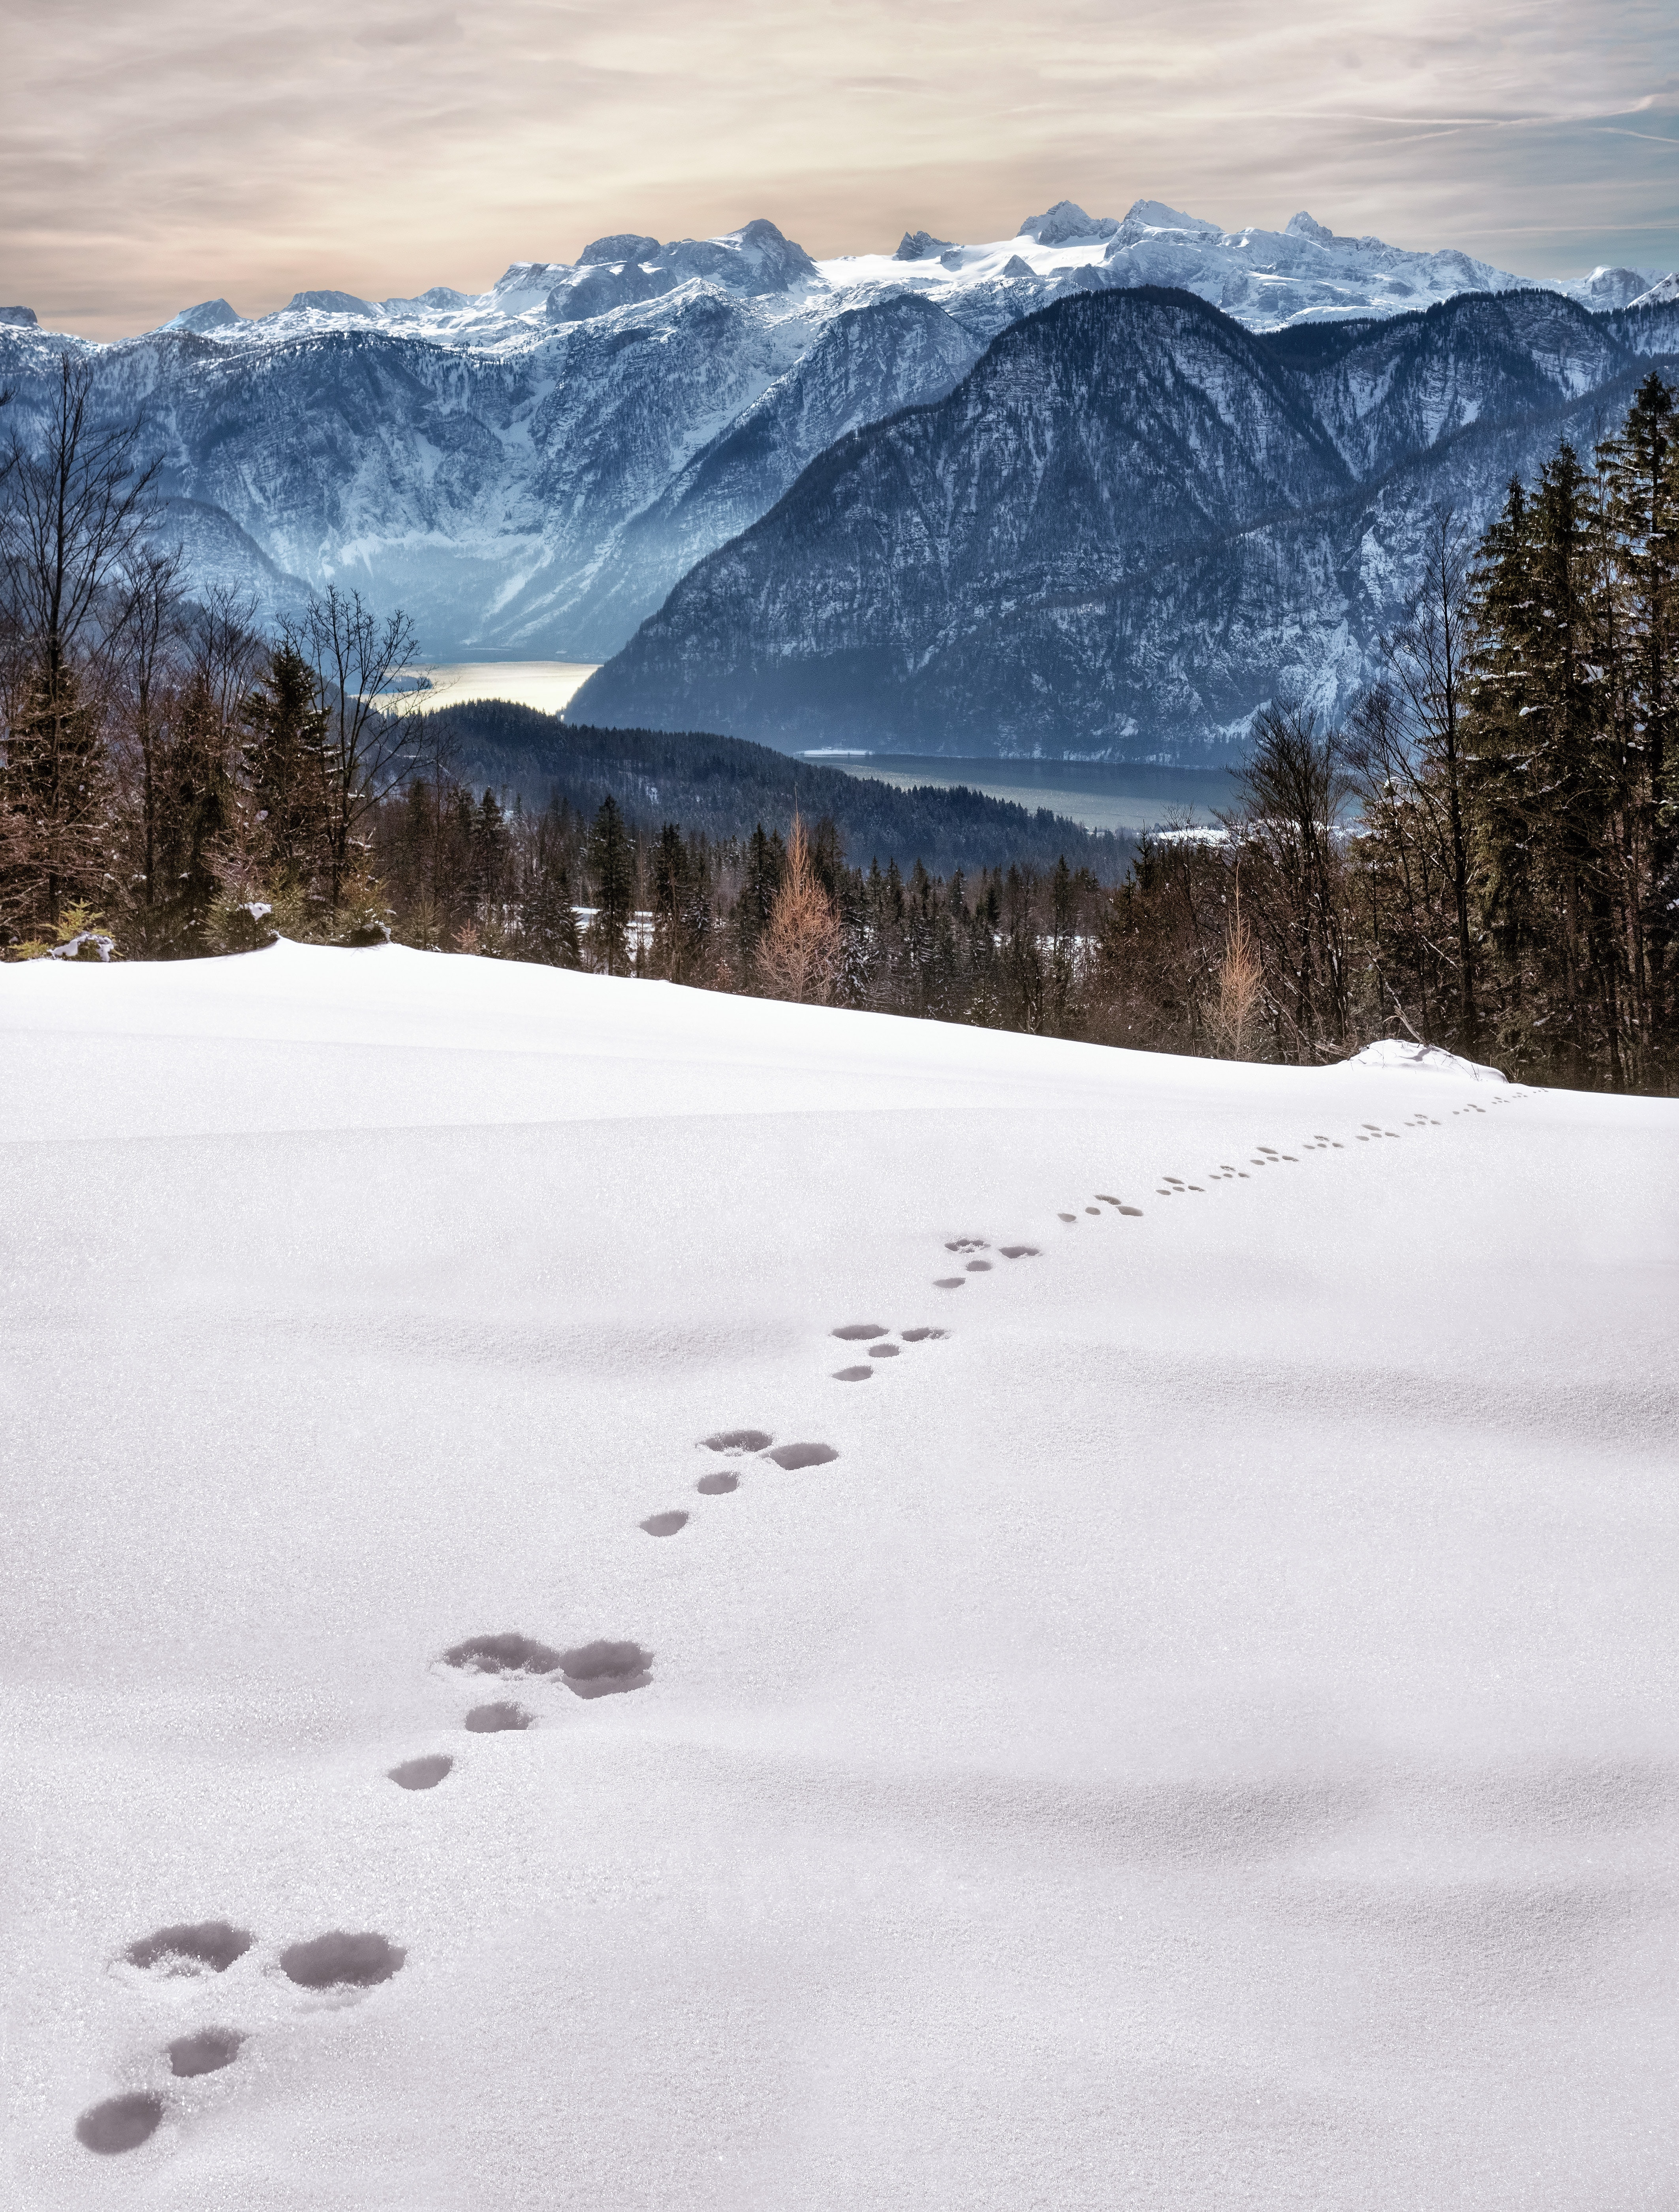 Animal Foot Prints on Snow Near Mountain at Daytime, Adventure, Outdoors, Winter landscape, Winter, HQ Photo